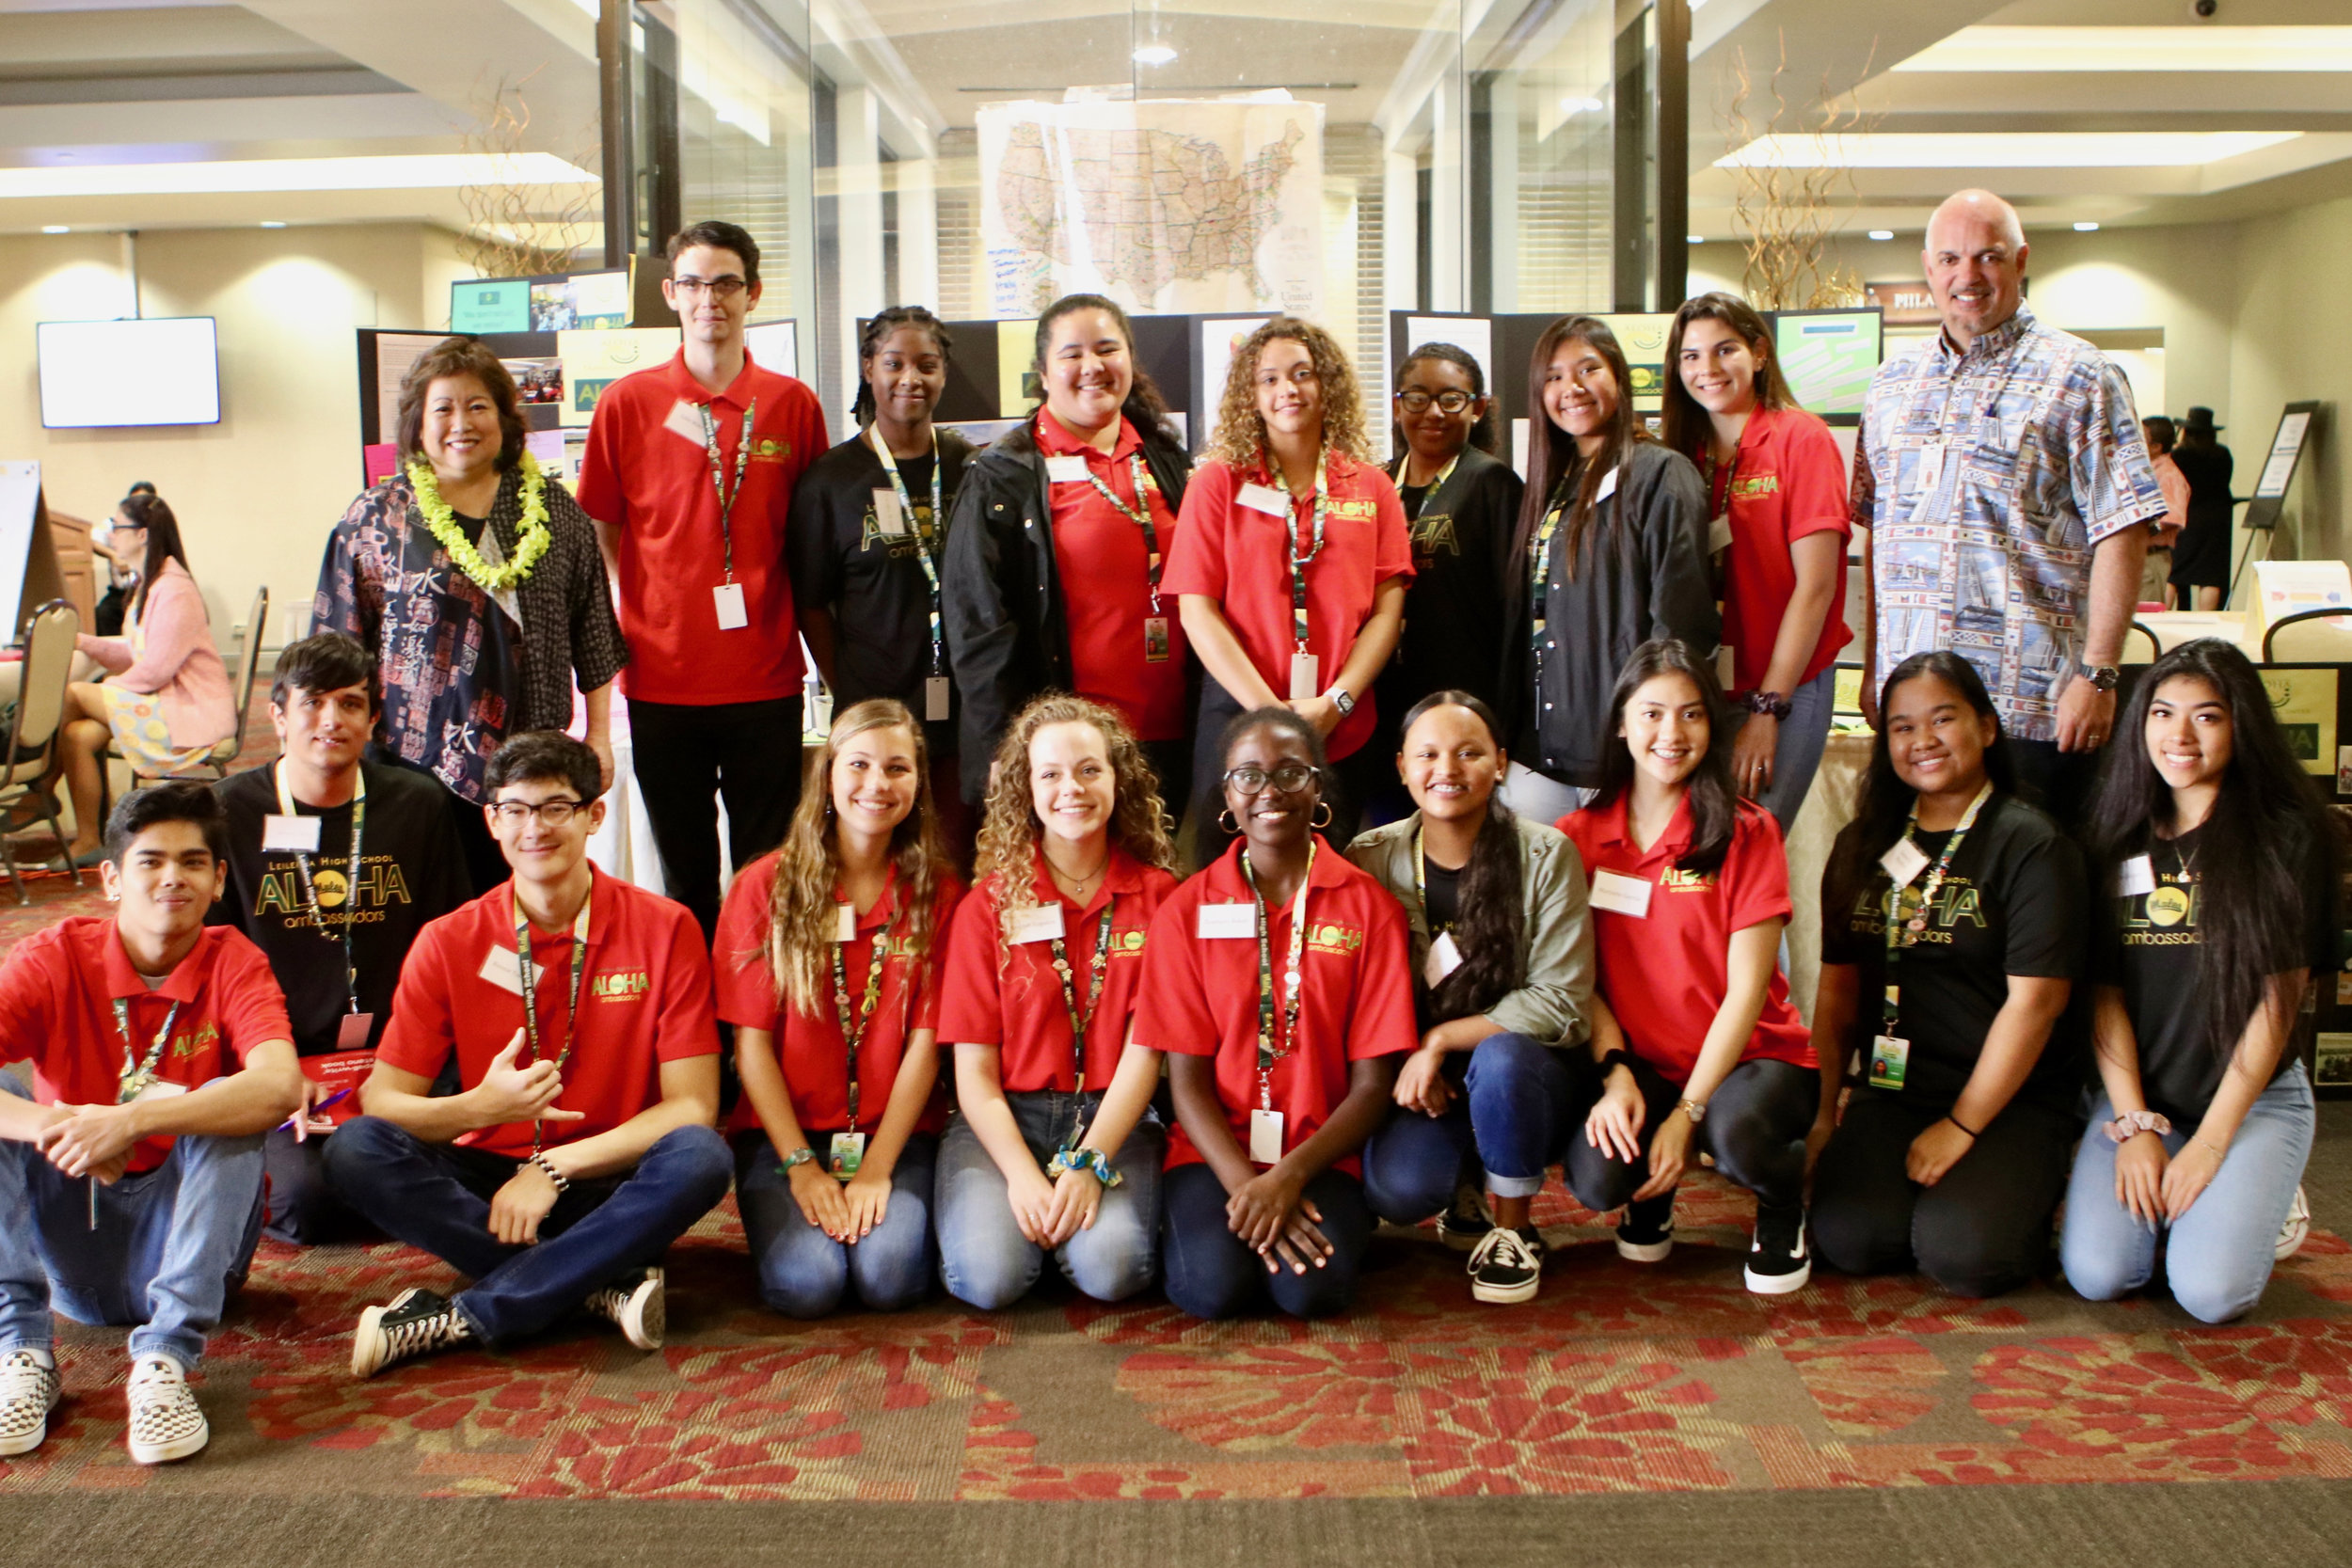 Leilehua Aloha Ambassadors returned to the conference this year to answer participant questions at their resource tables.